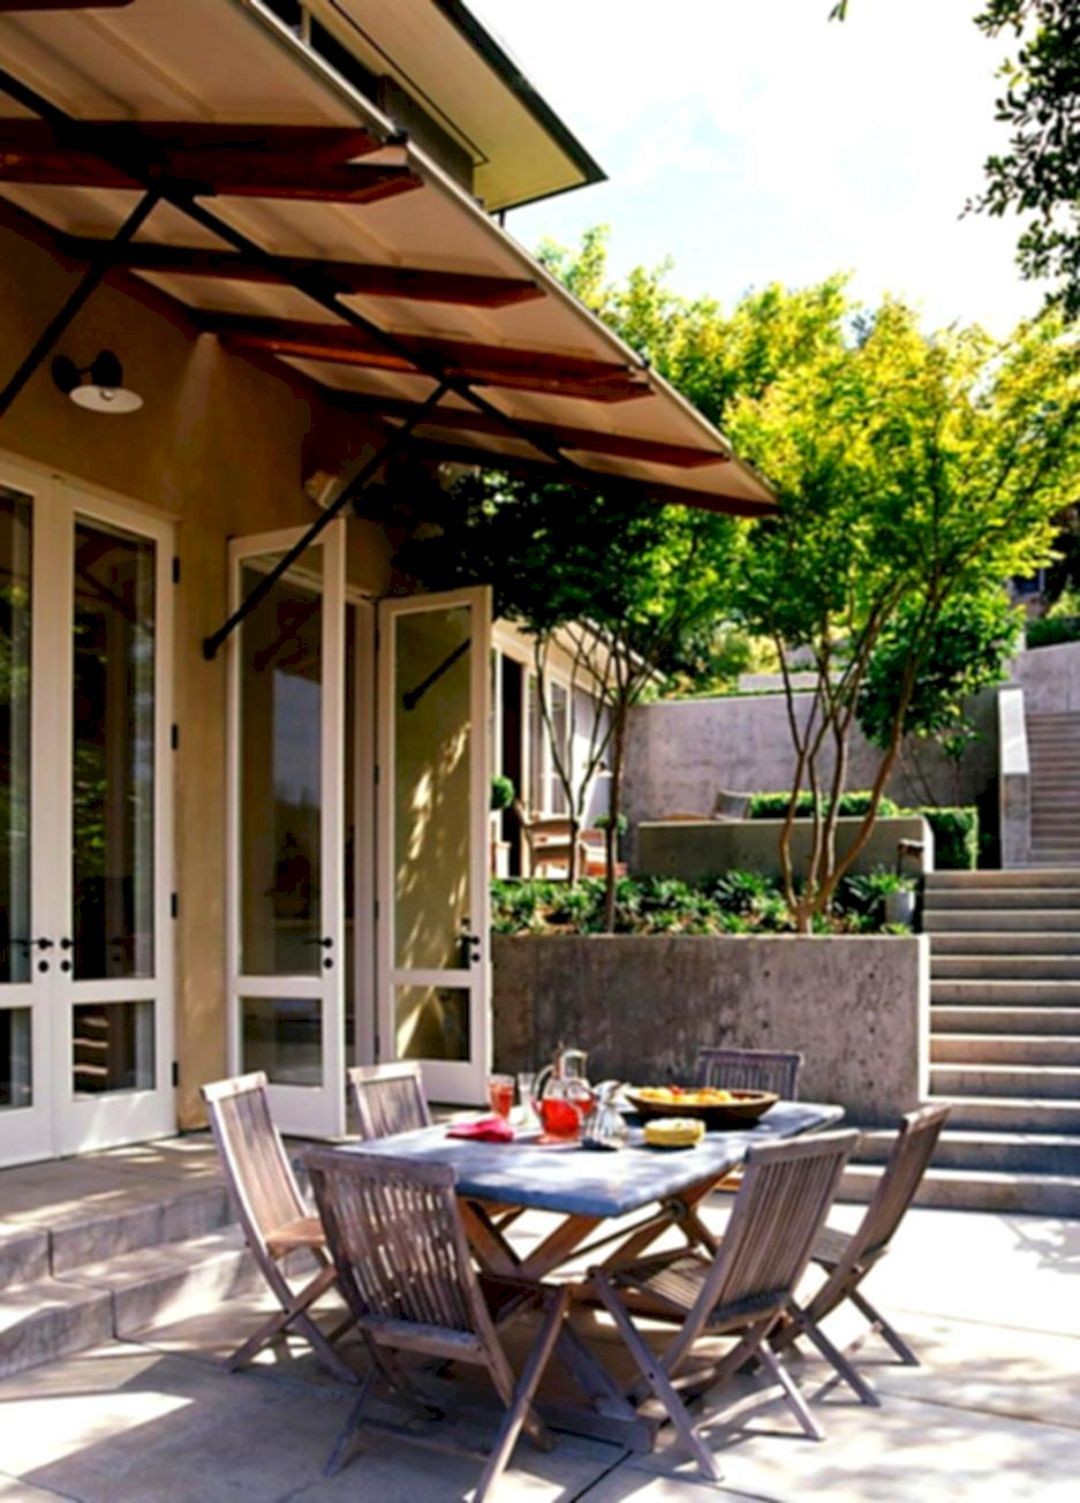 35 Marvelous Small Outdoor Patio Ideas On A Budget With Images Diy Patio Outdoor Patio Decor Outdoor Patio Designs